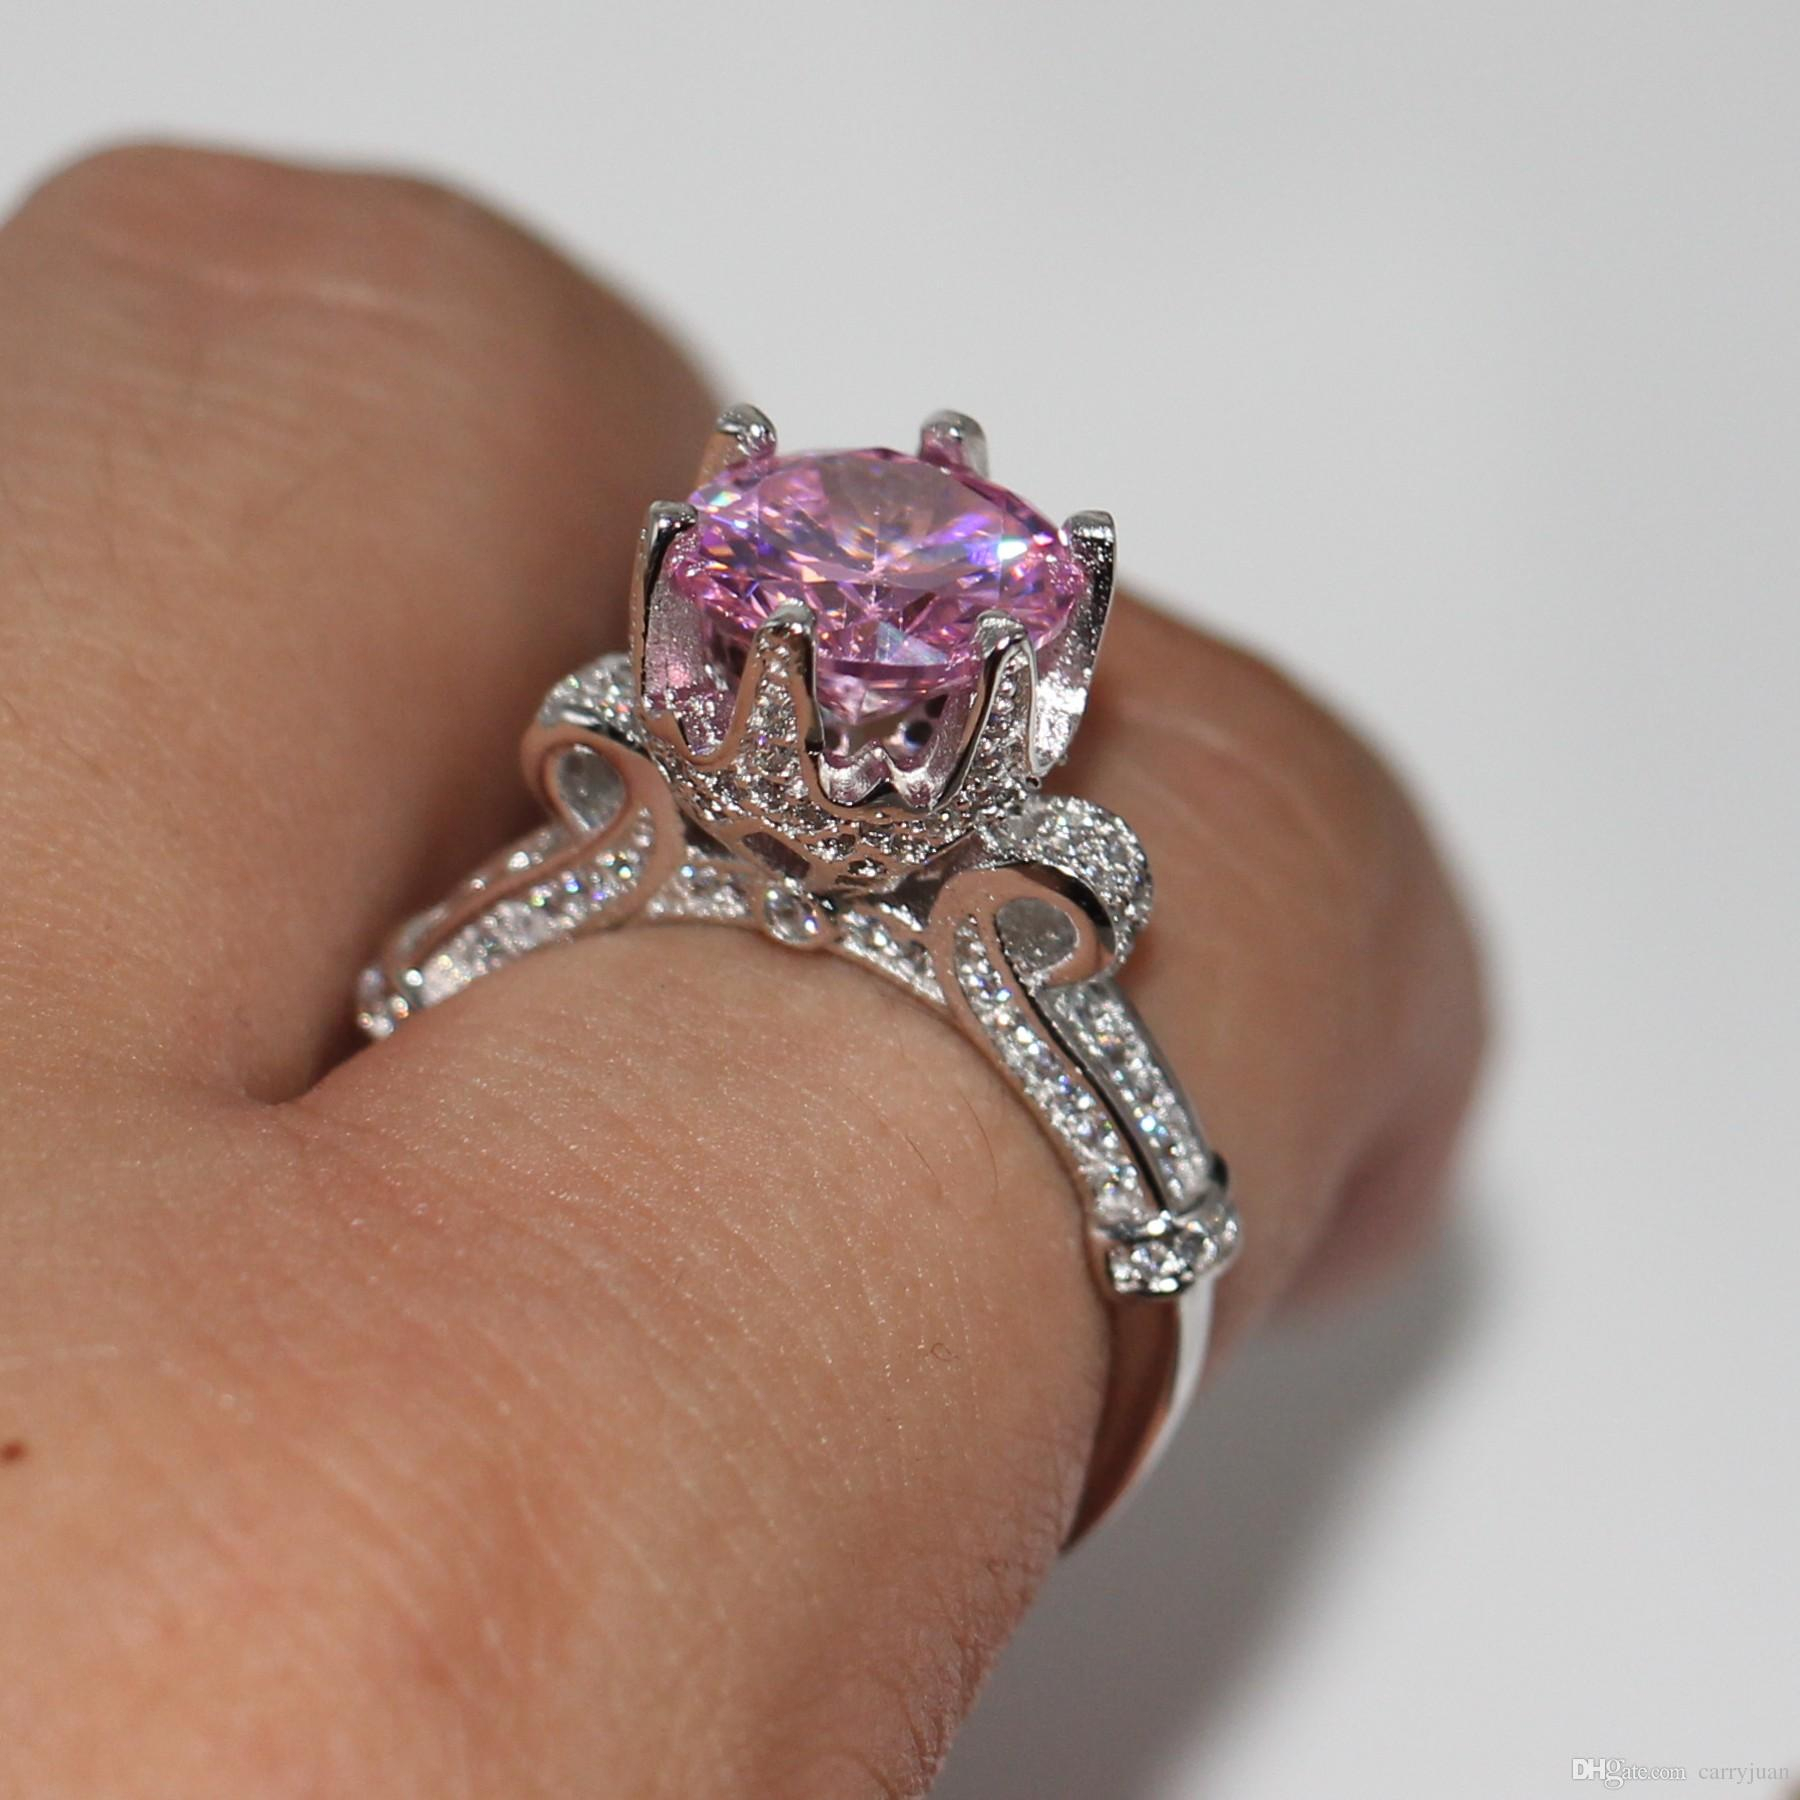 Size 5 10 Sparkling Luxury Jewelry 925 Sterling Silver Round Cut Pink  Sapphire Cz Diamond Gemstones Party Women Wedding Crown Band Ring Gift With Most Popular Pink Sparkling Crown Rings (View 21 of 25)